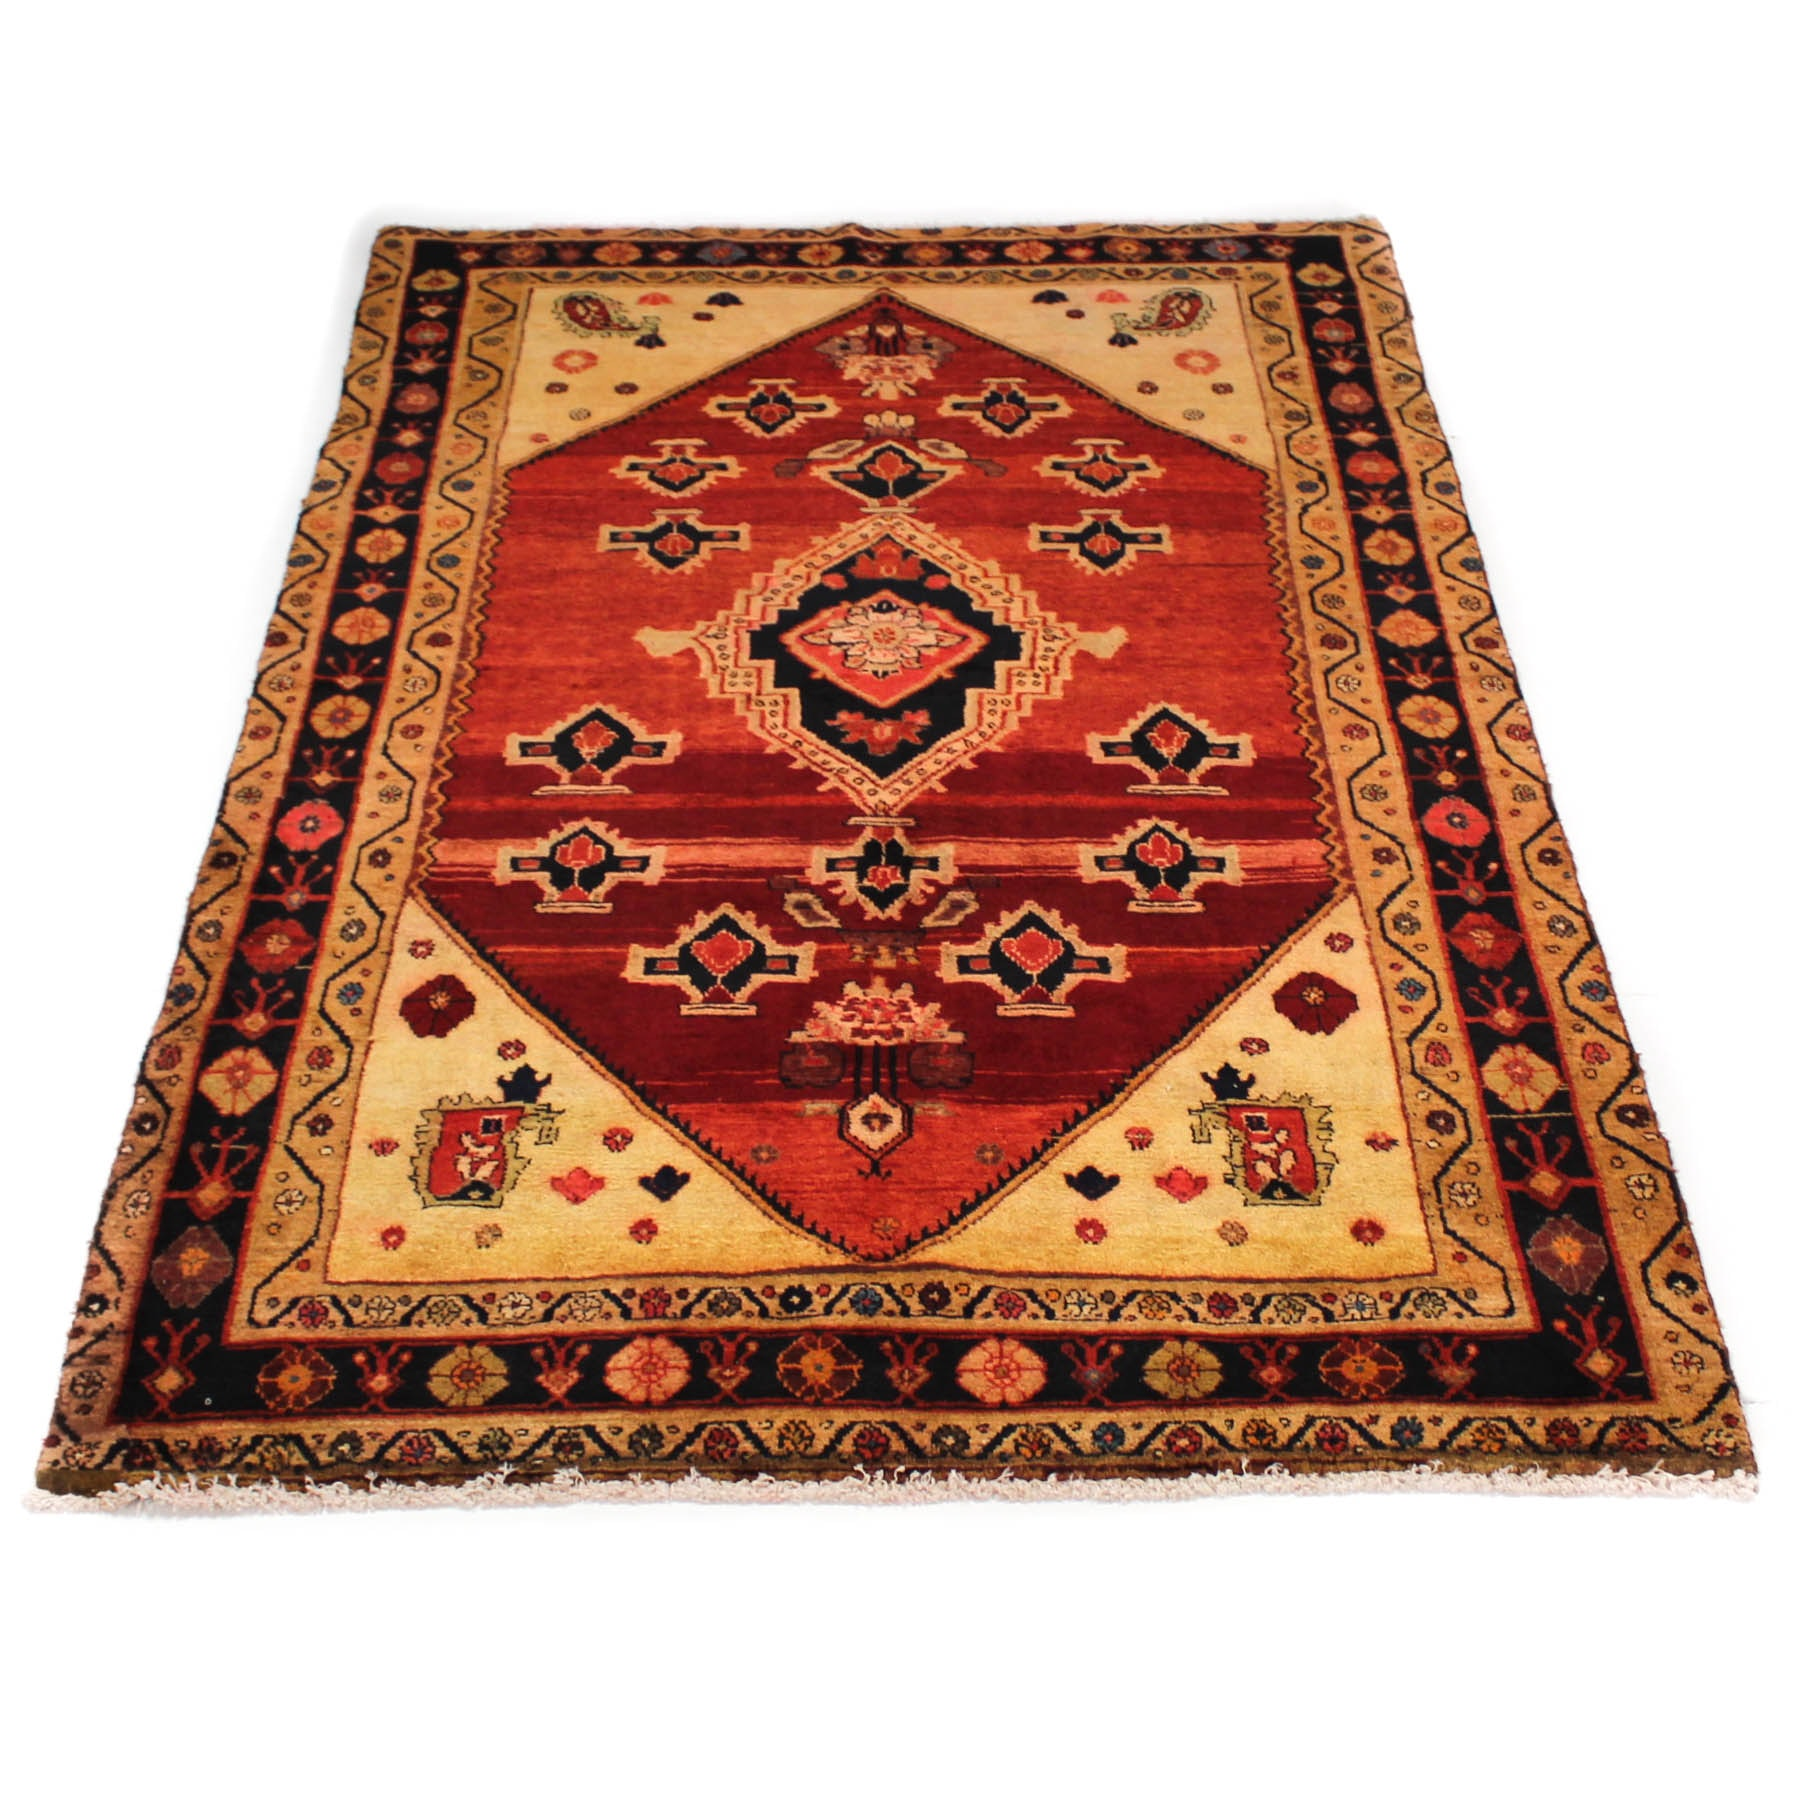 5' x 8'2 Semi-Antique Hand-Knotted Persian Northwest Rug